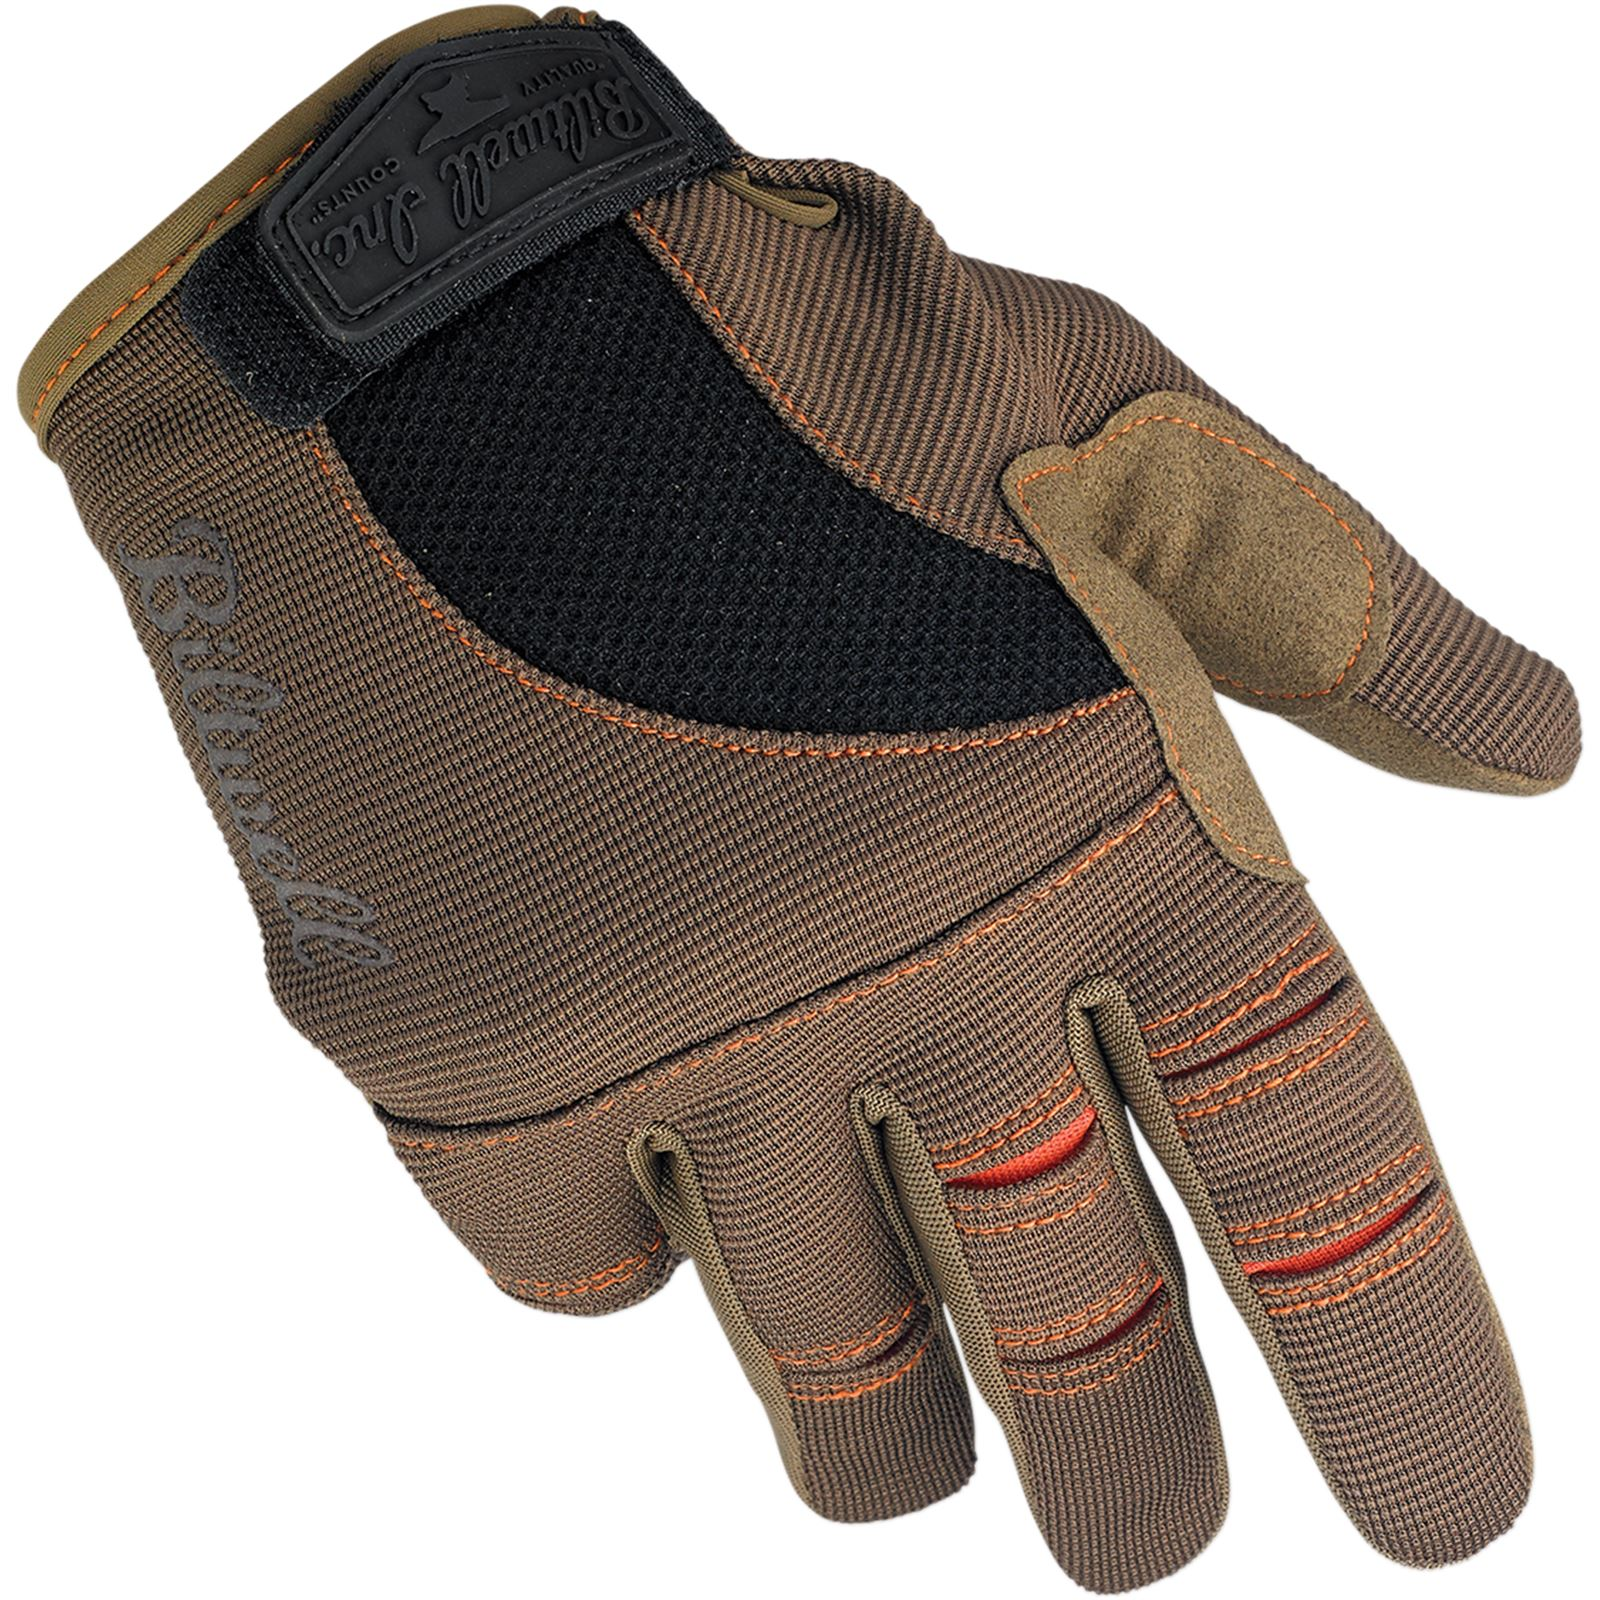 Biltwell Inc. Moto Gloves - Brown/Orange - X-Large